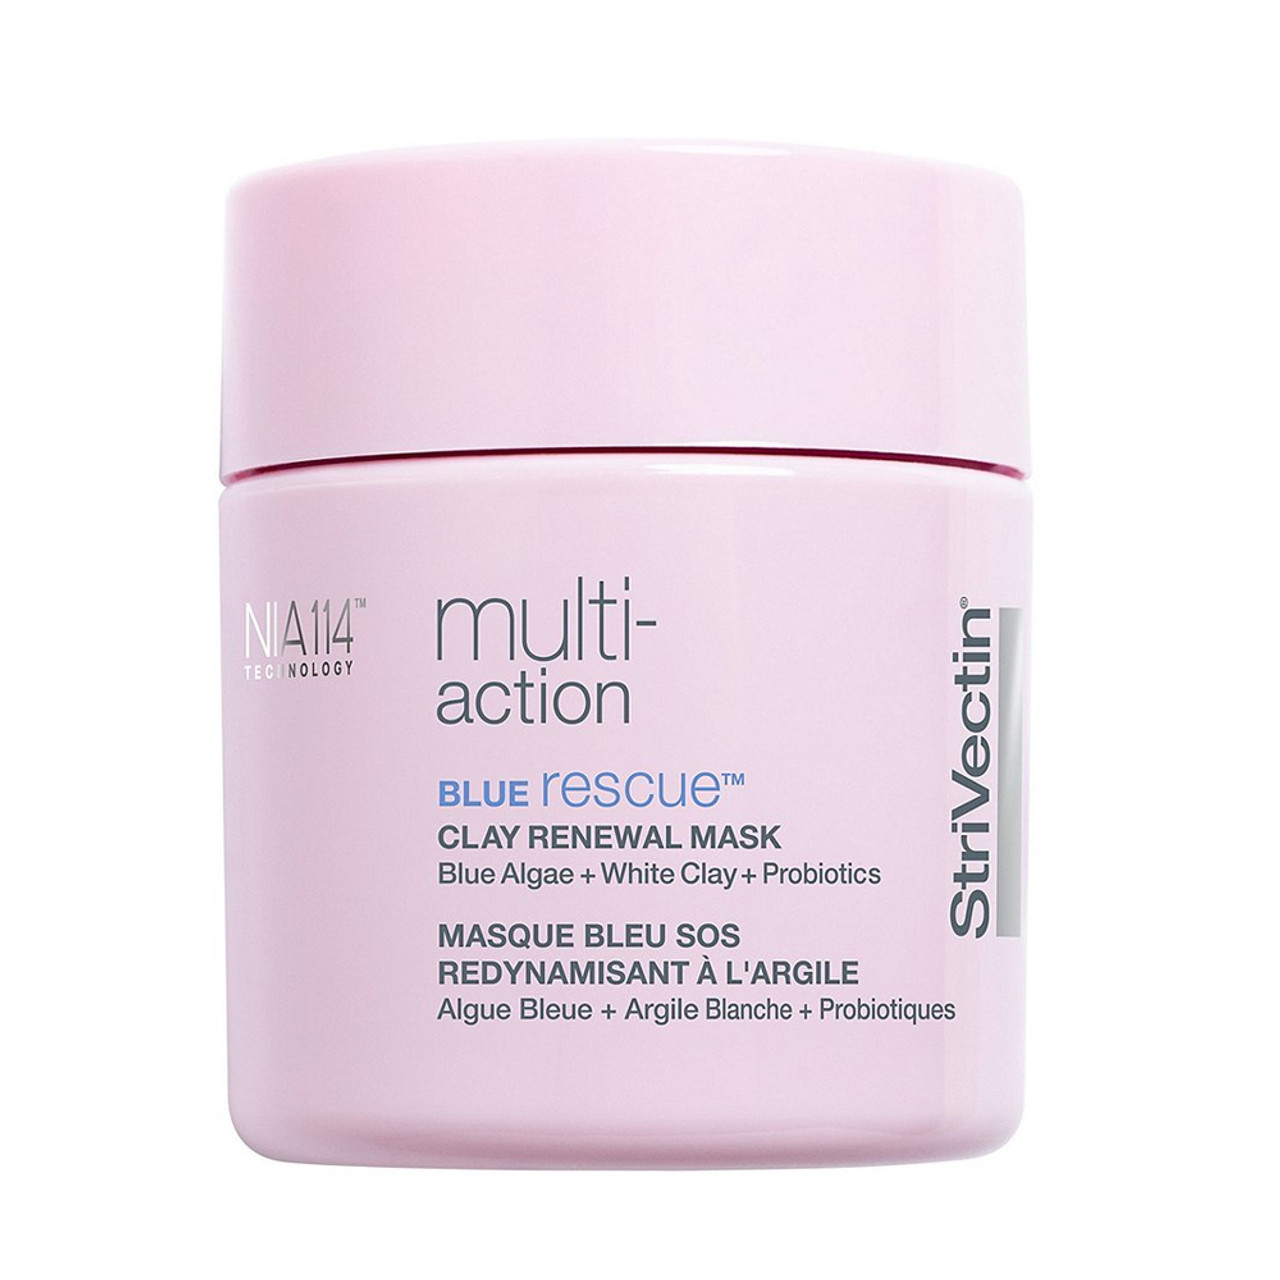 StriVectin Multi-Action Blue Rescue Clay Renewal Mask